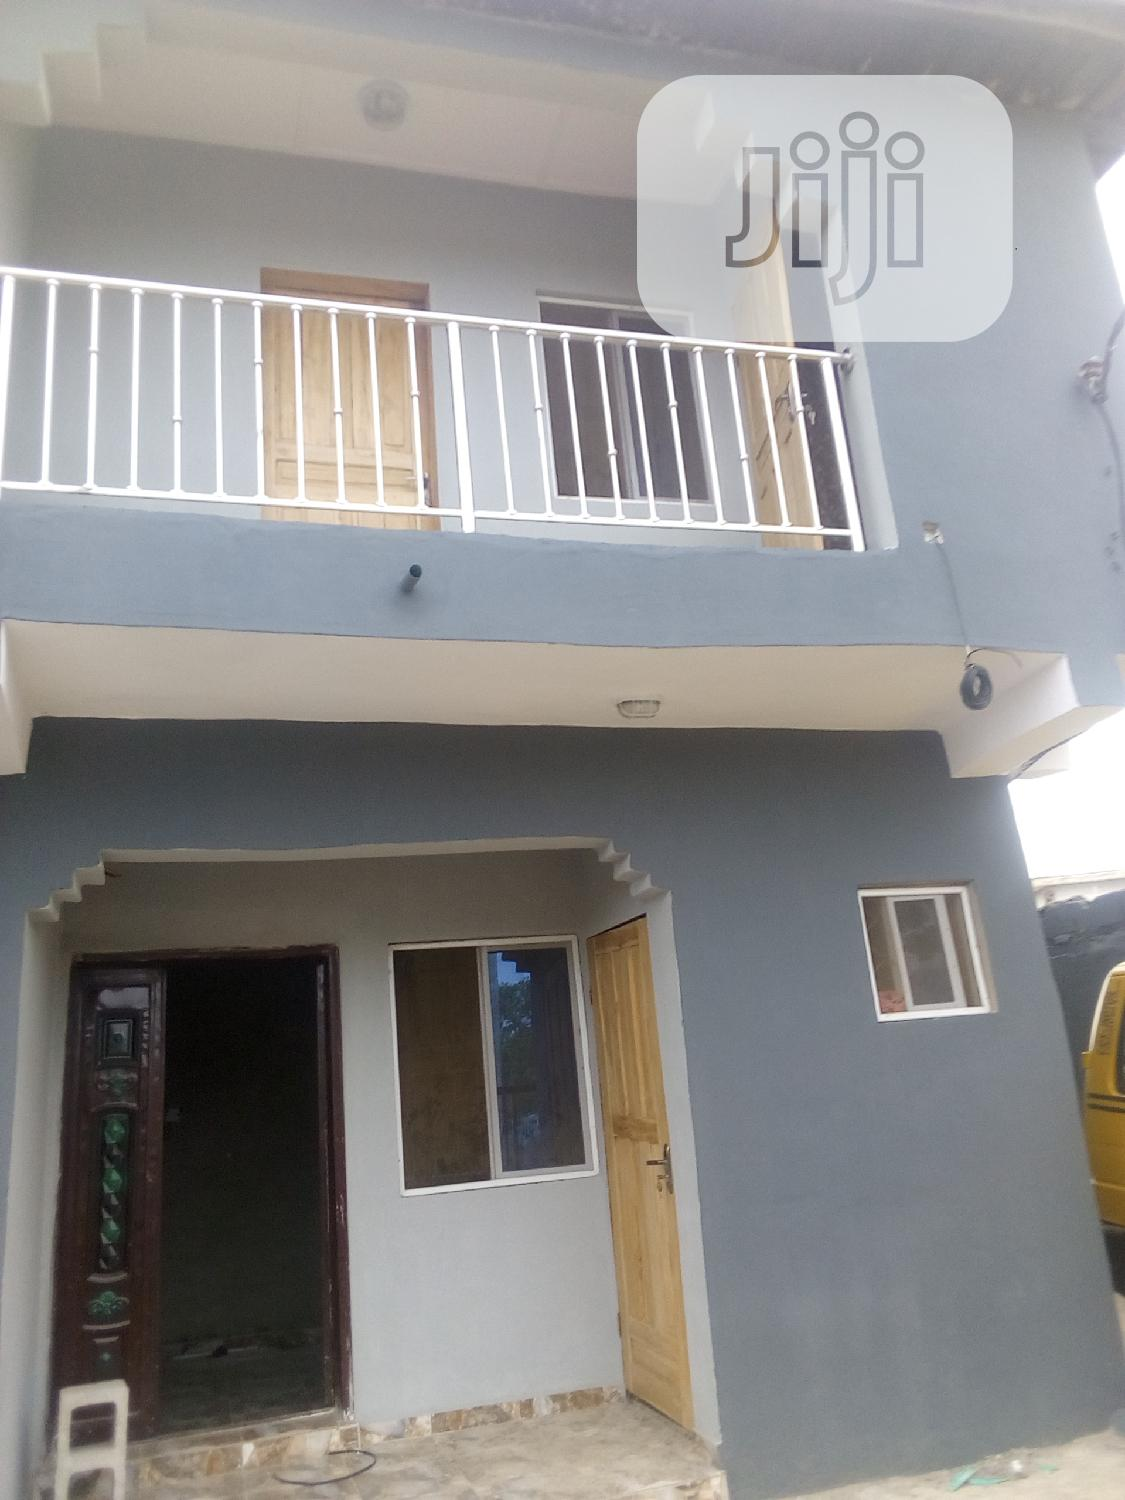 To Let: A Neatly Built 2bed Room For Rent At Cele Egbe, Lagos